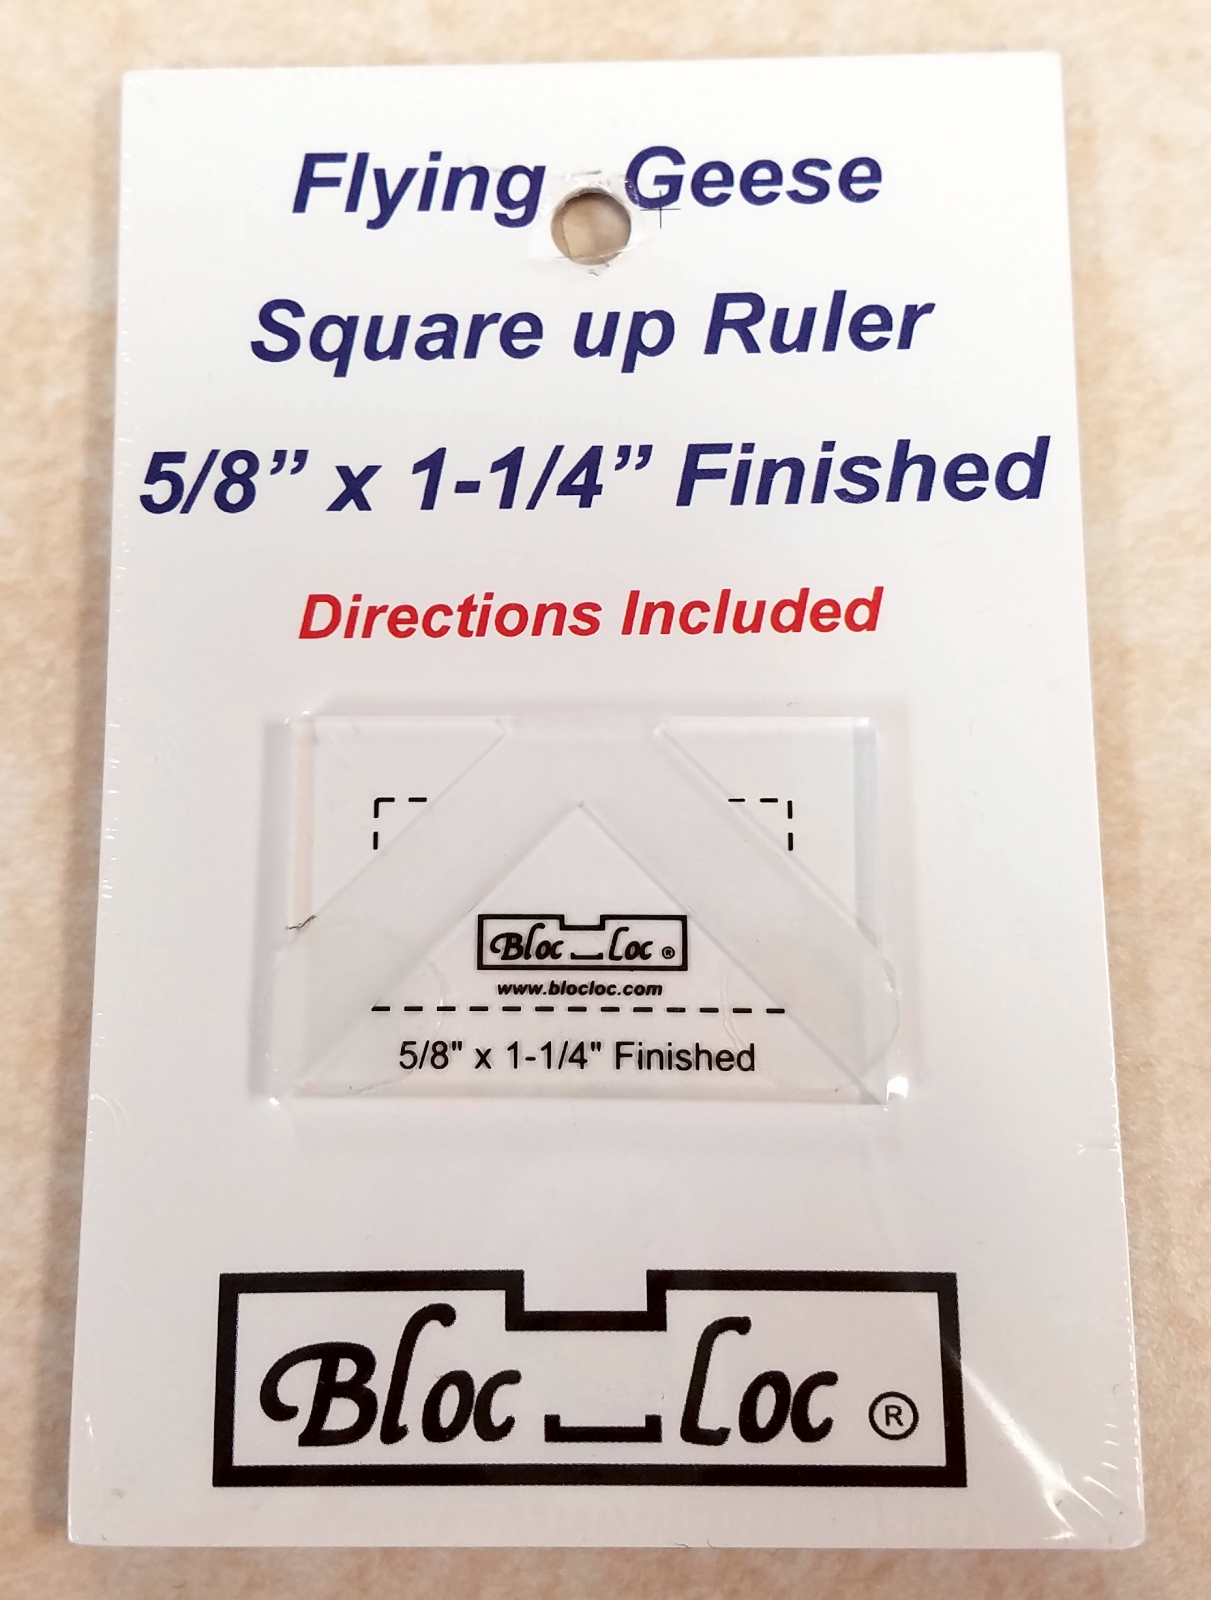 Bloc Loc Flying Geese Square Up Ruler 5/8 x 1-1/4